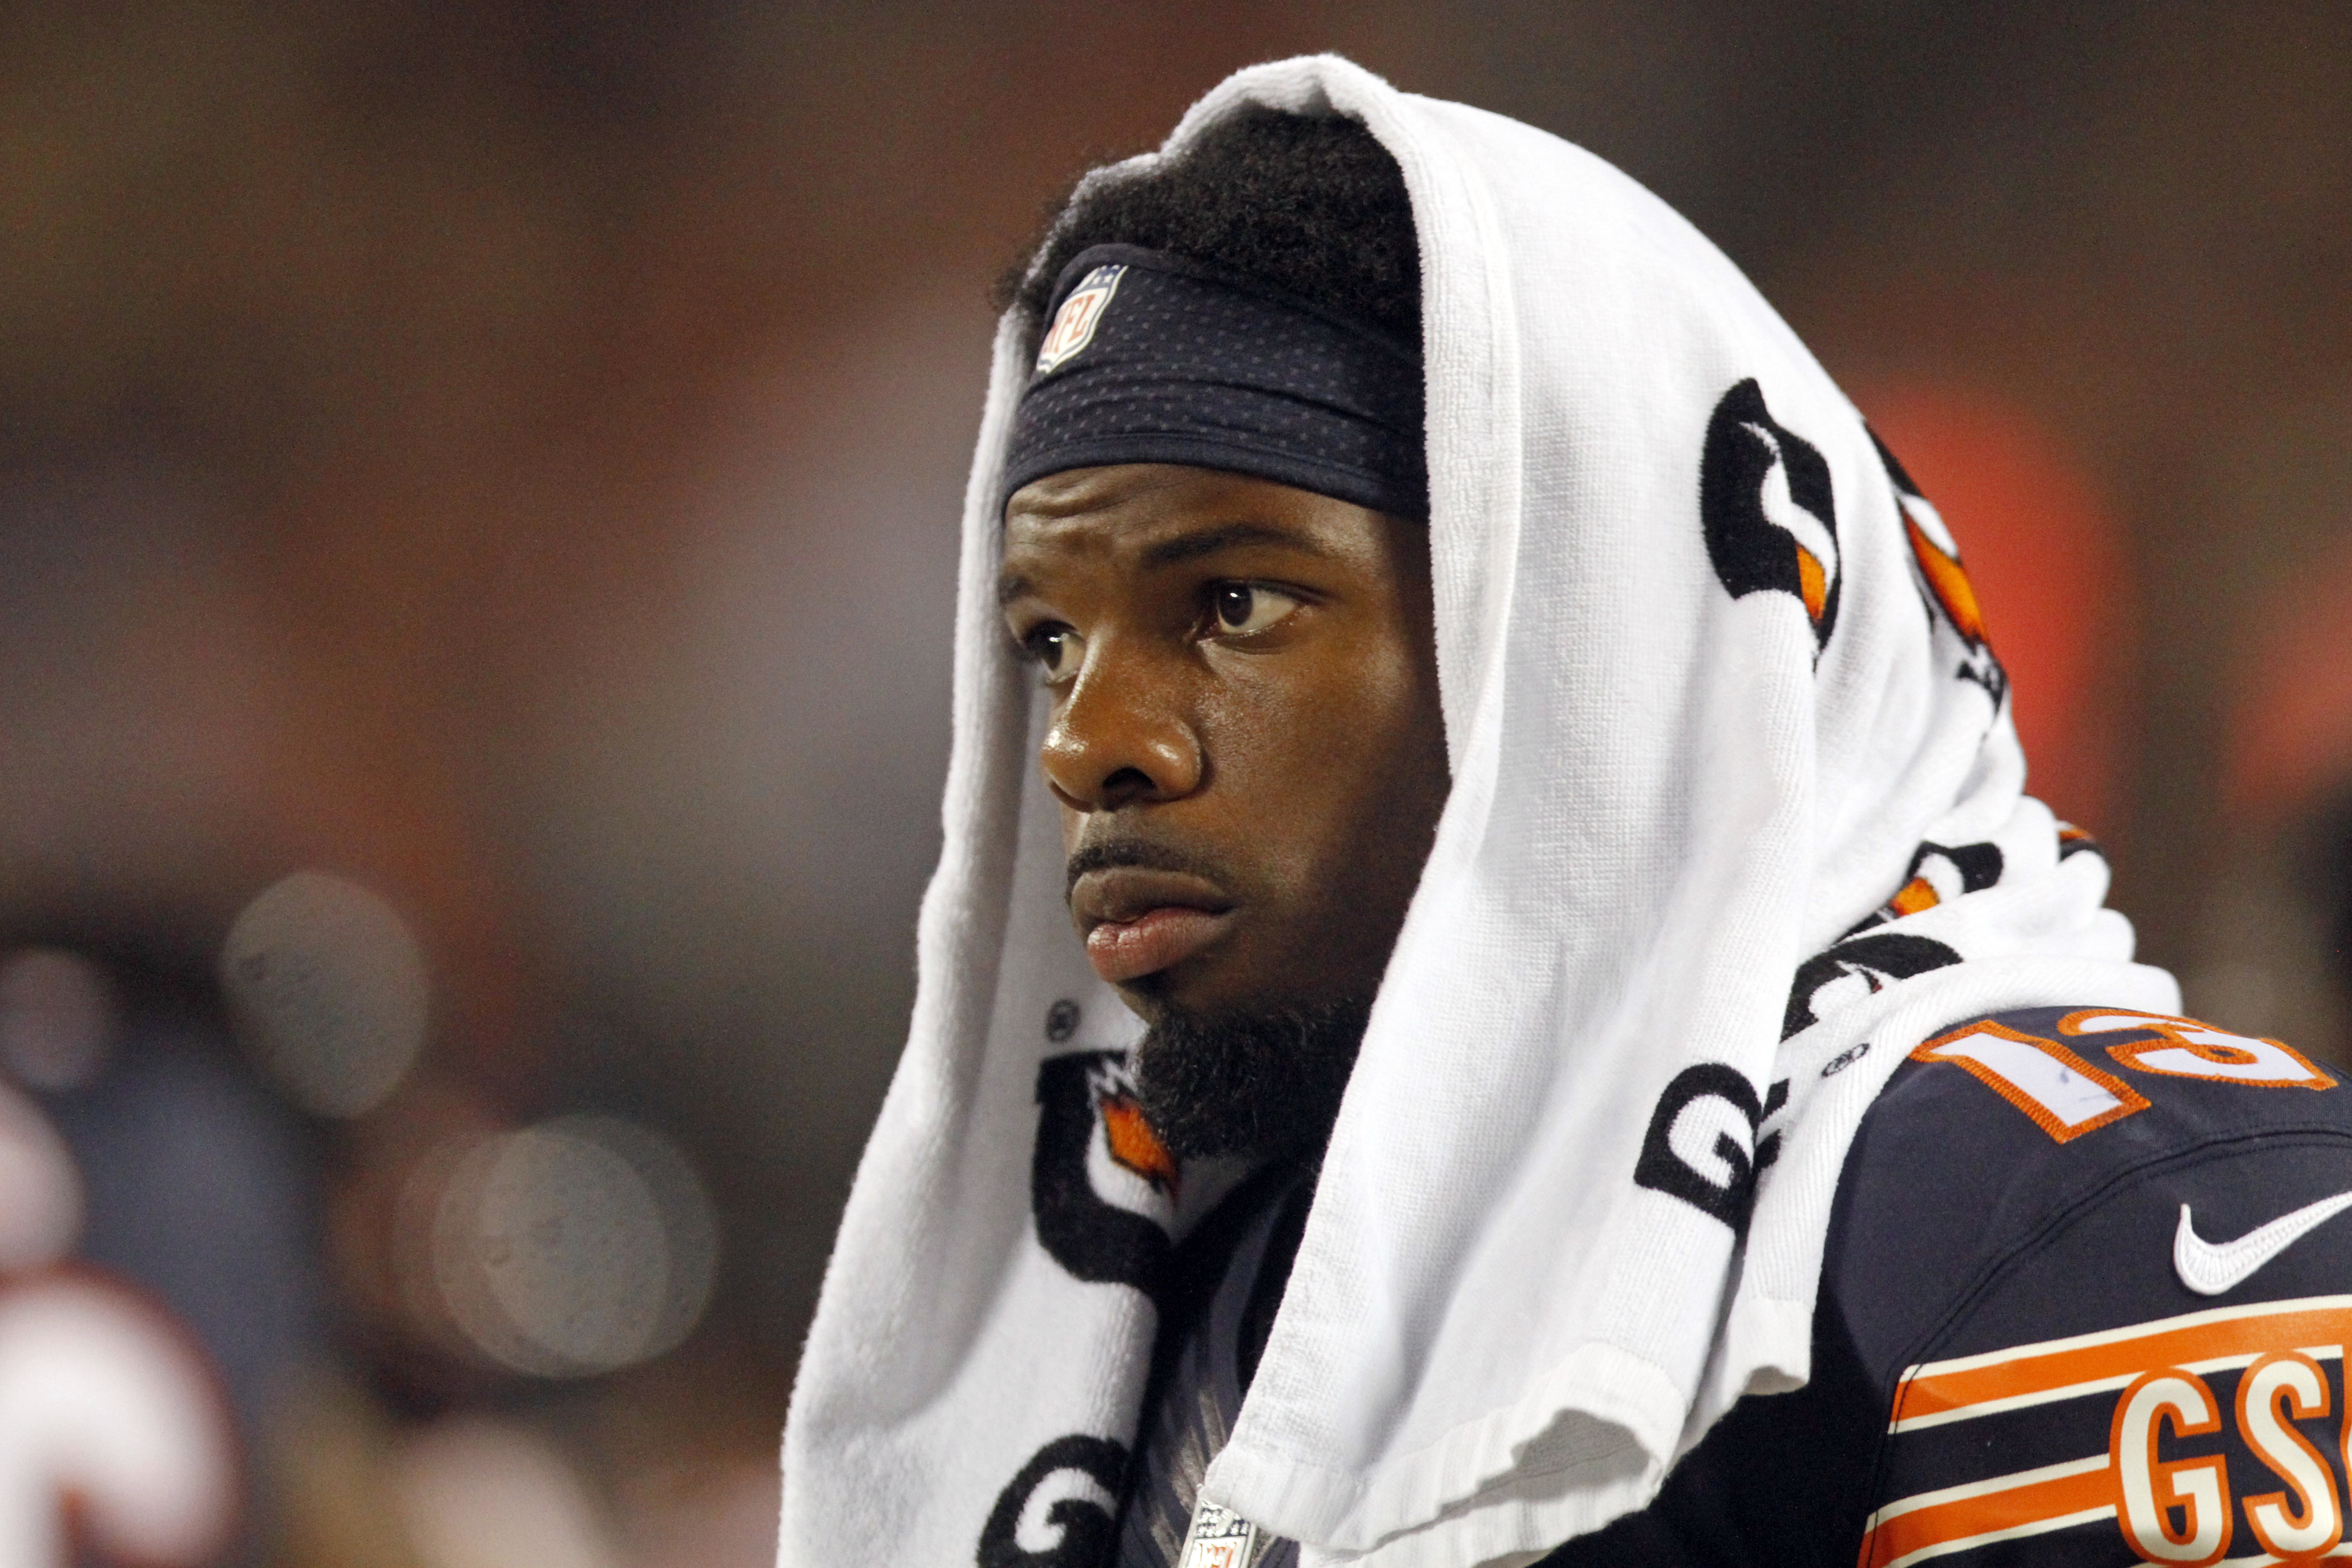 Chicago Bears wide receiver Kevin White watches from the sideline during the second half of the team's NFL preseason football game against the Denver Broncos in Chicago, Thursday, Aug. 11, 2016. (AP Photo/Tae-Gyun Kim)